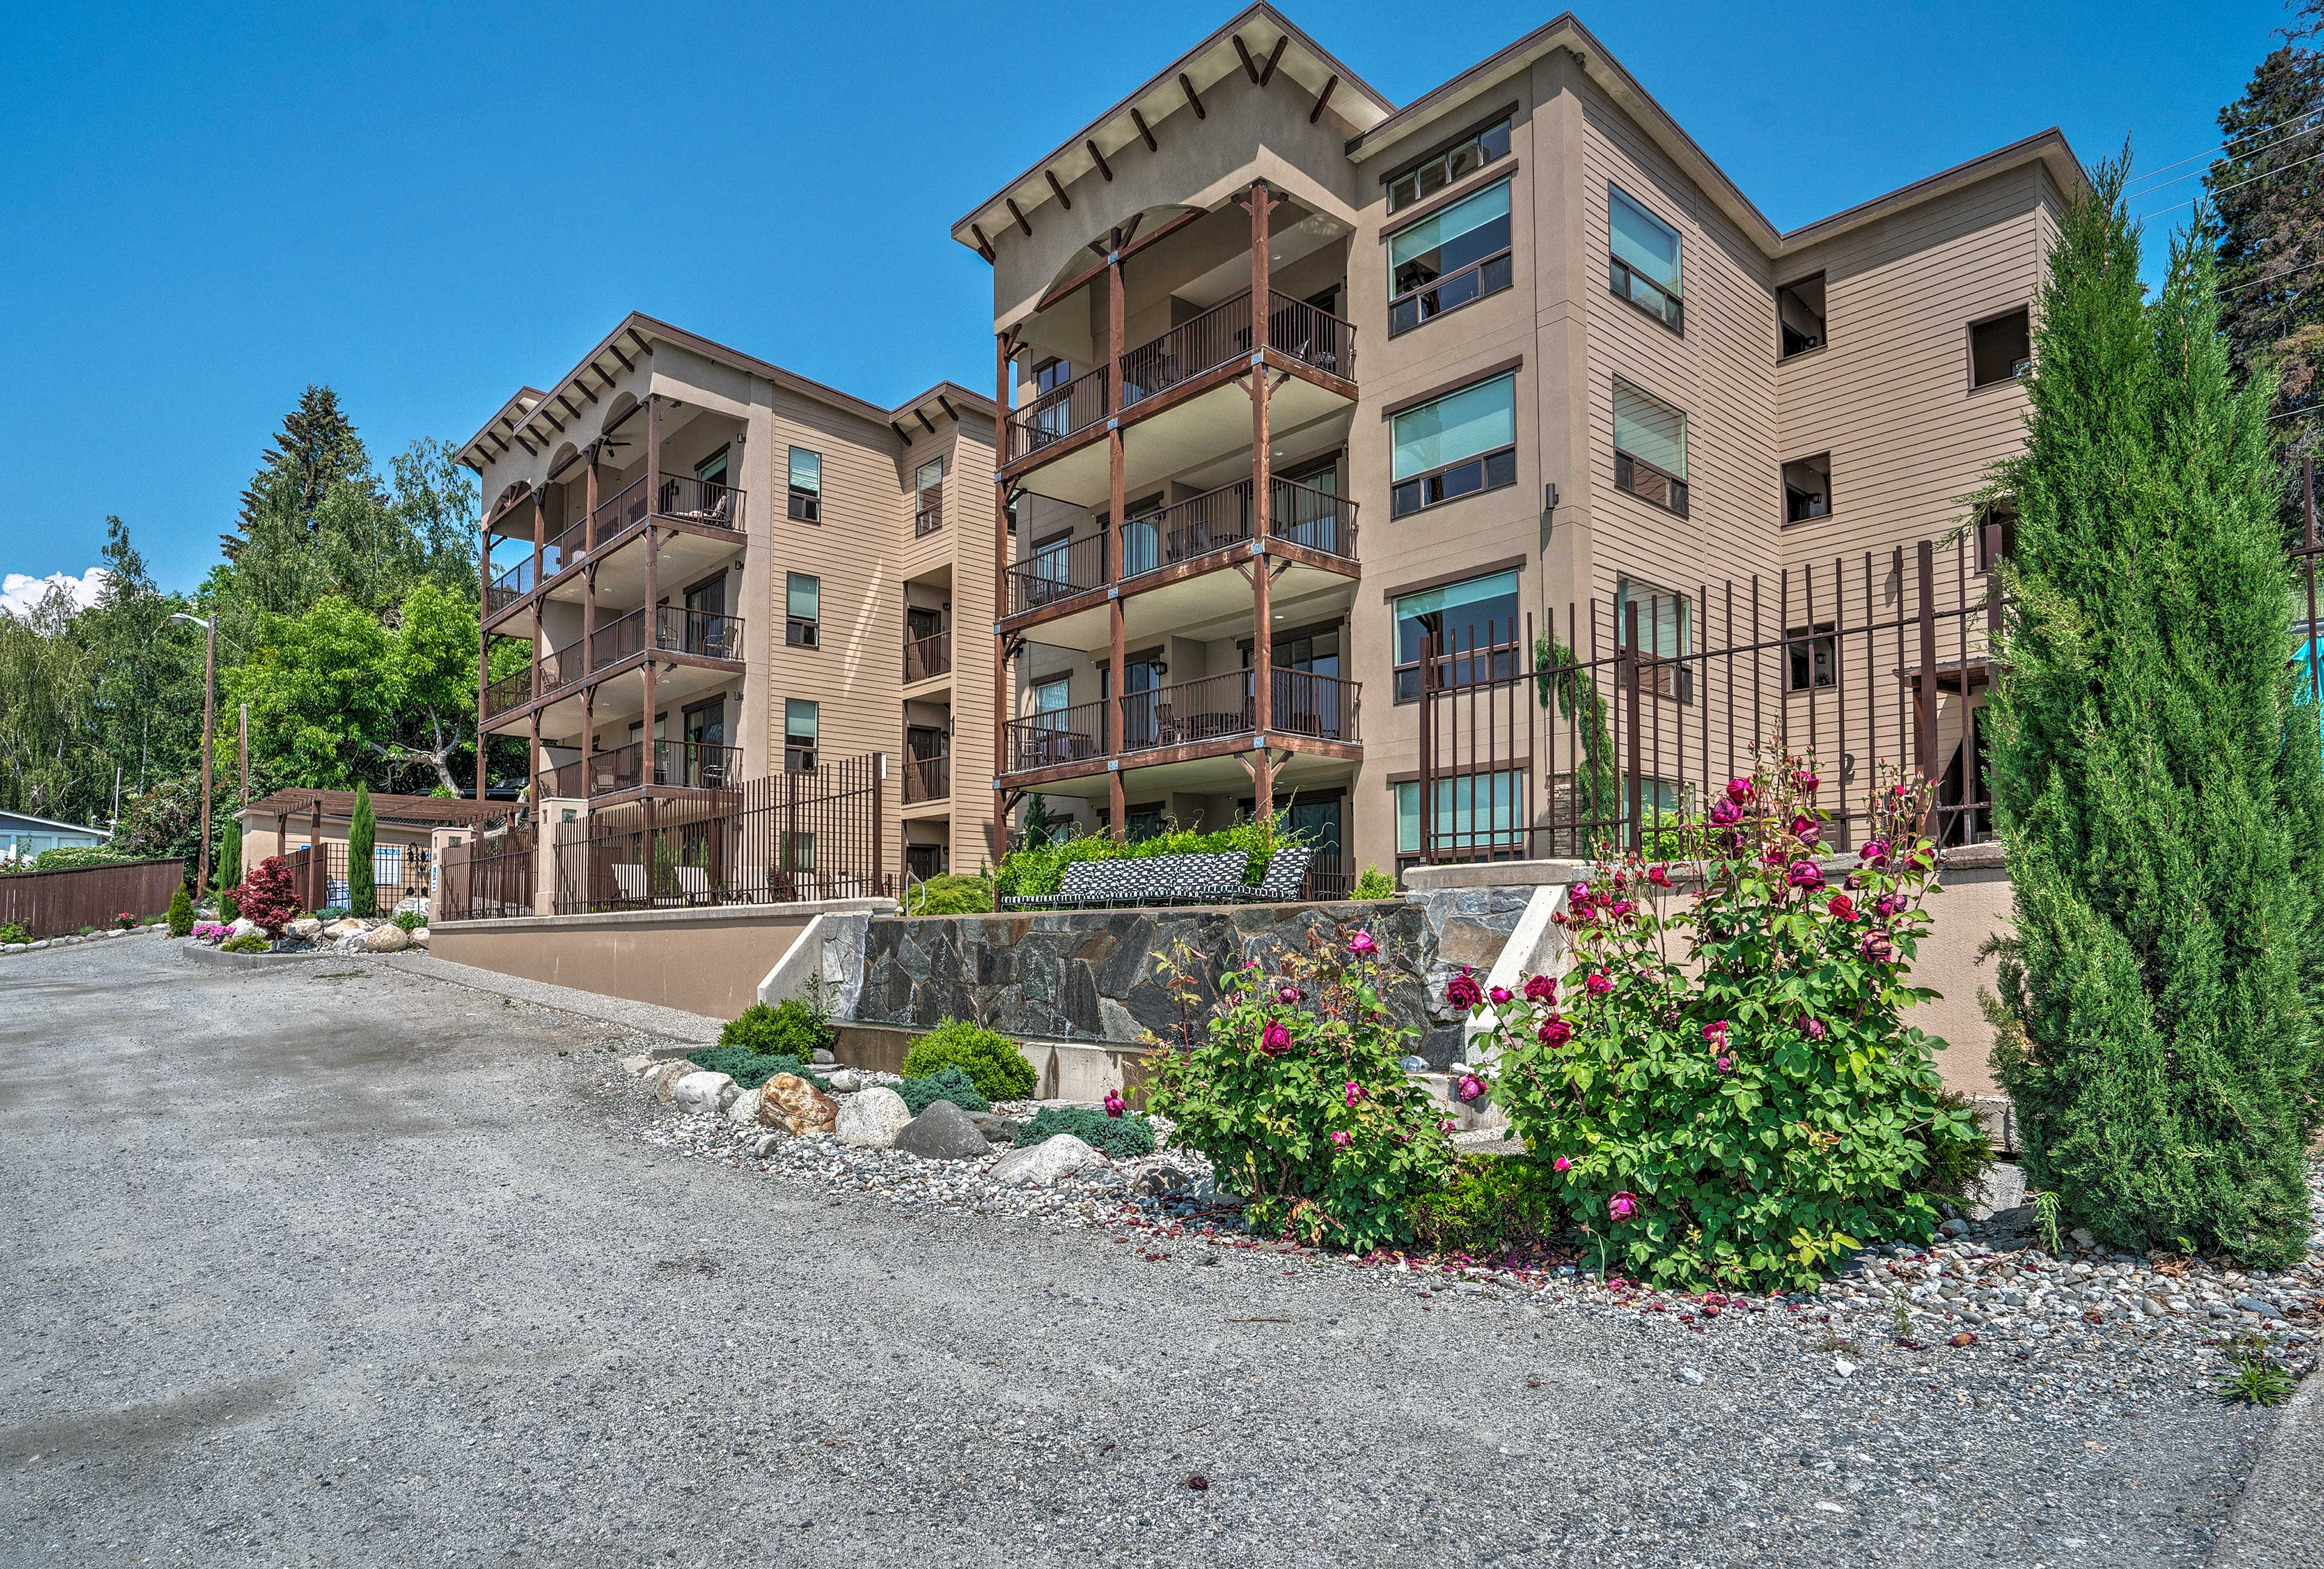 This condo is within walking distance of marinas, restaurants, and breweries.